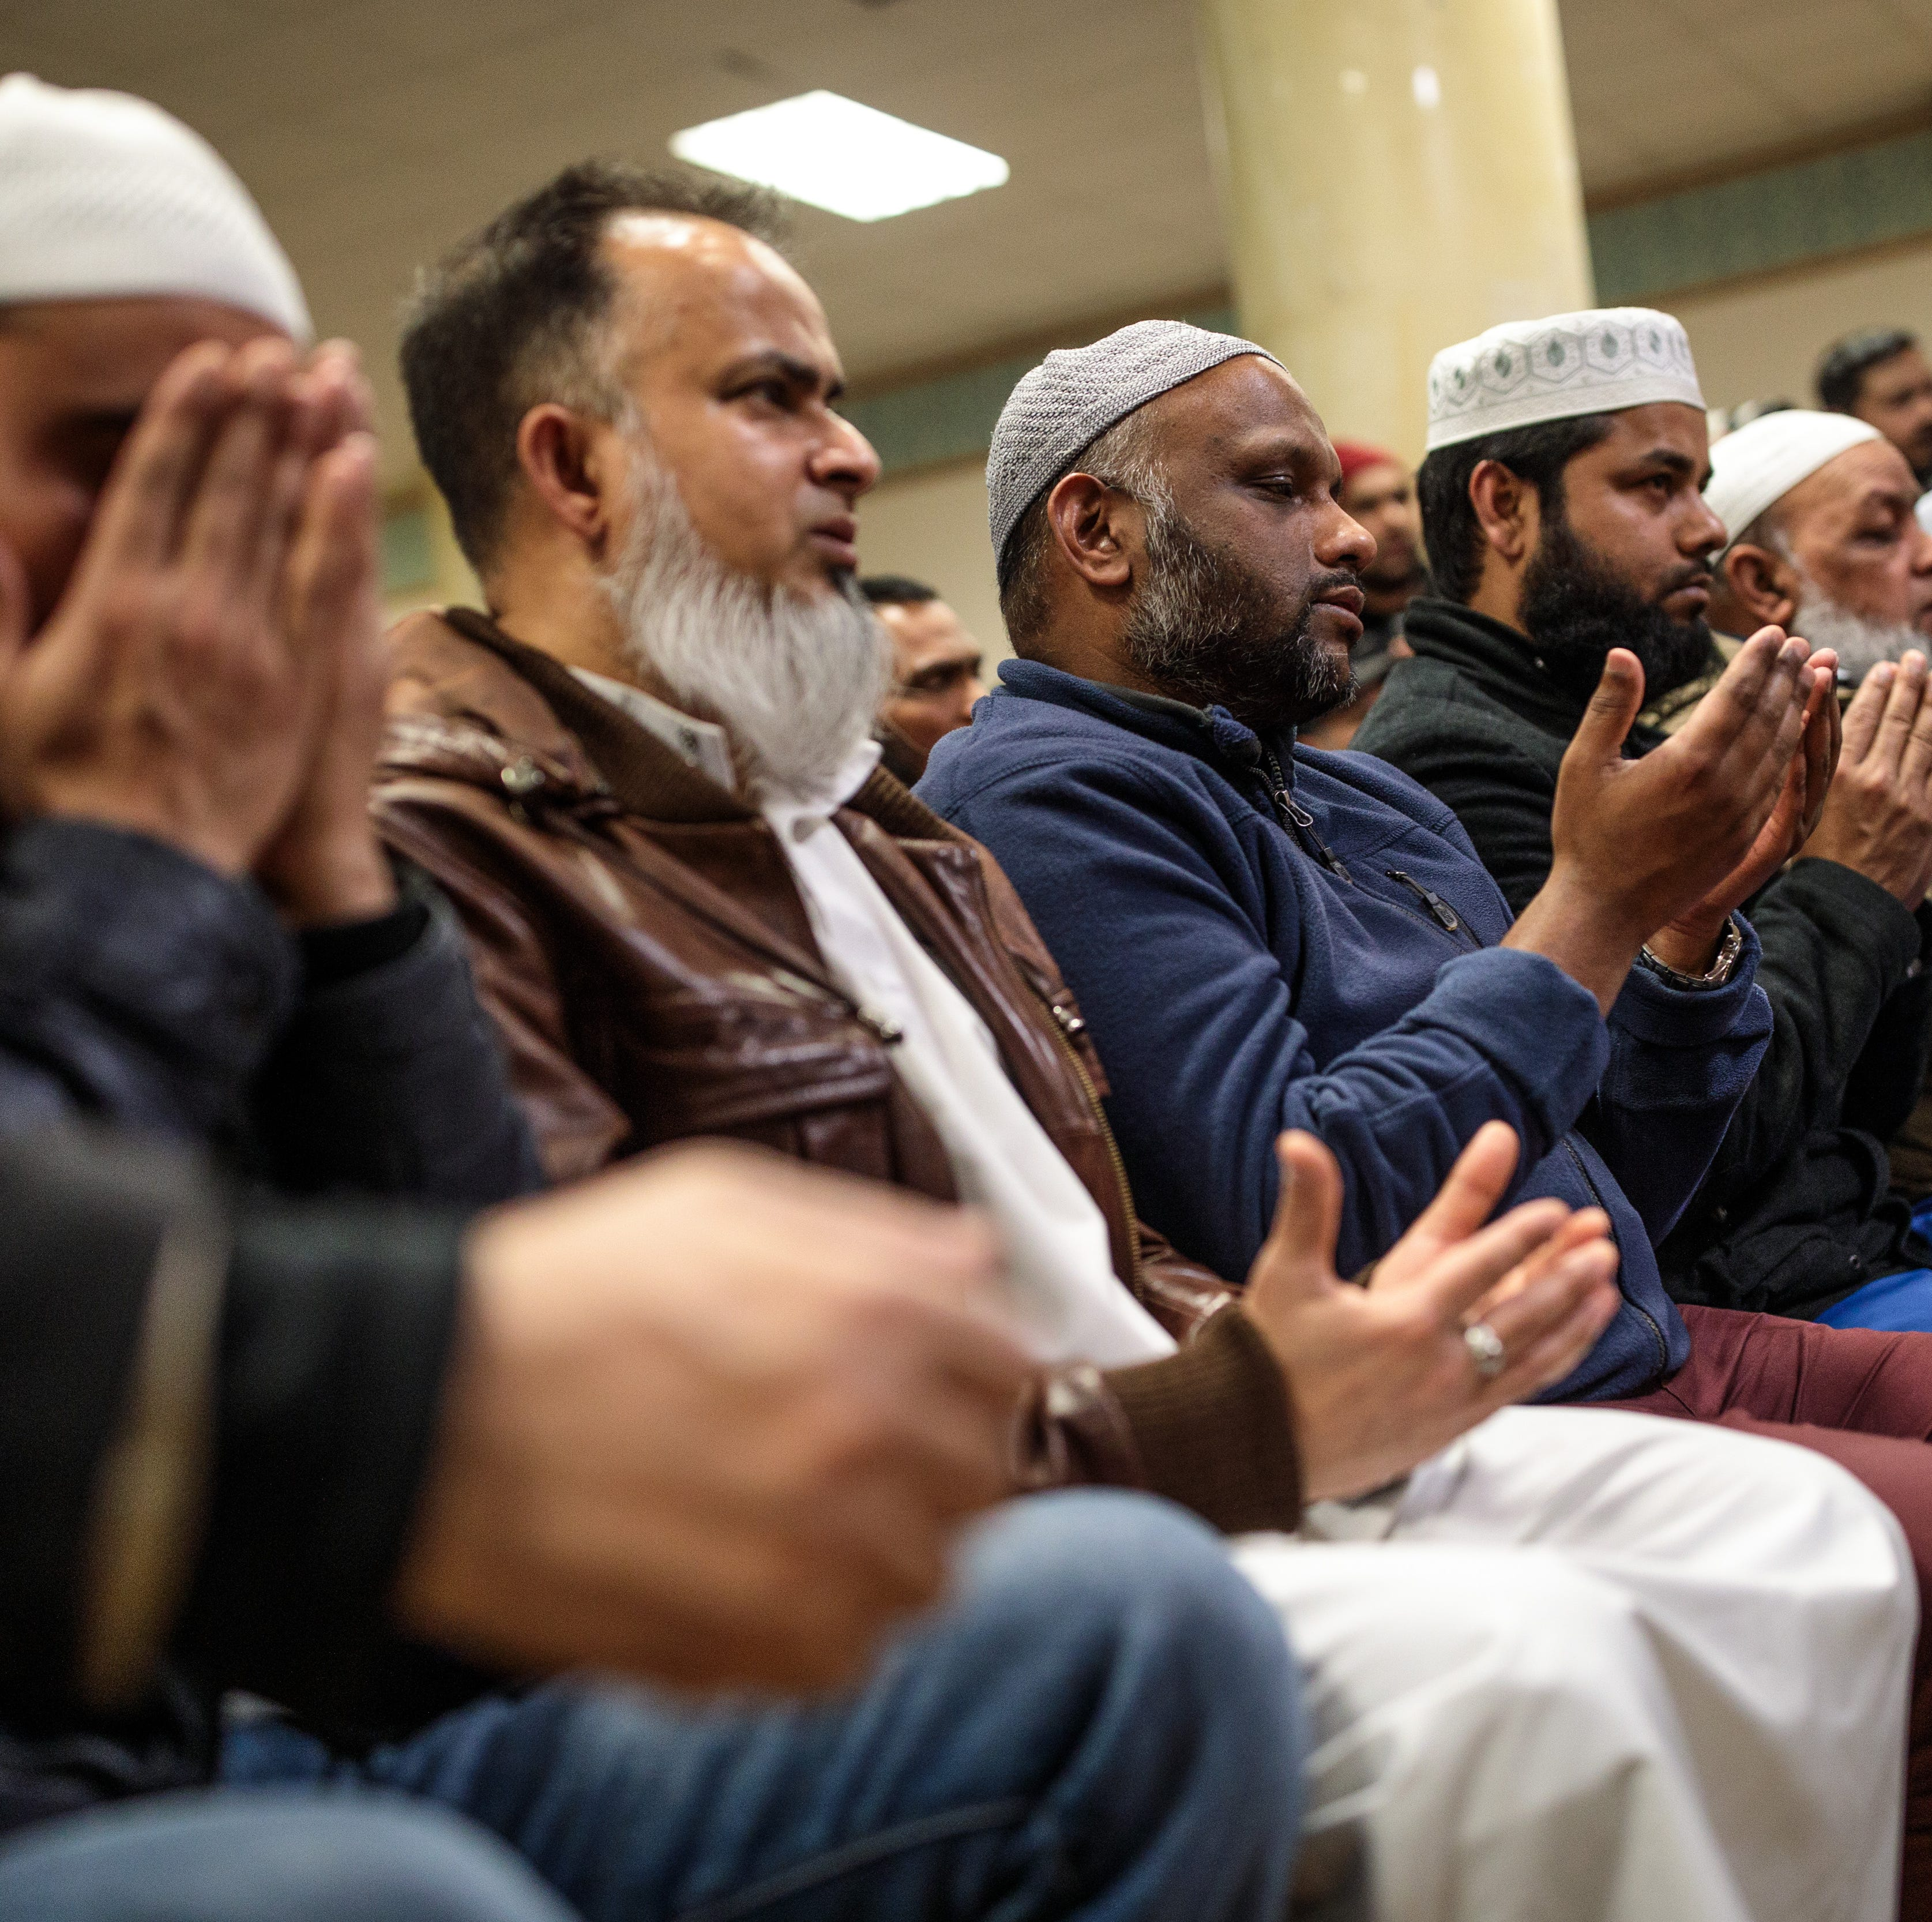 New Zealand mosque shootings: Are social media companies unwitting accomplices?